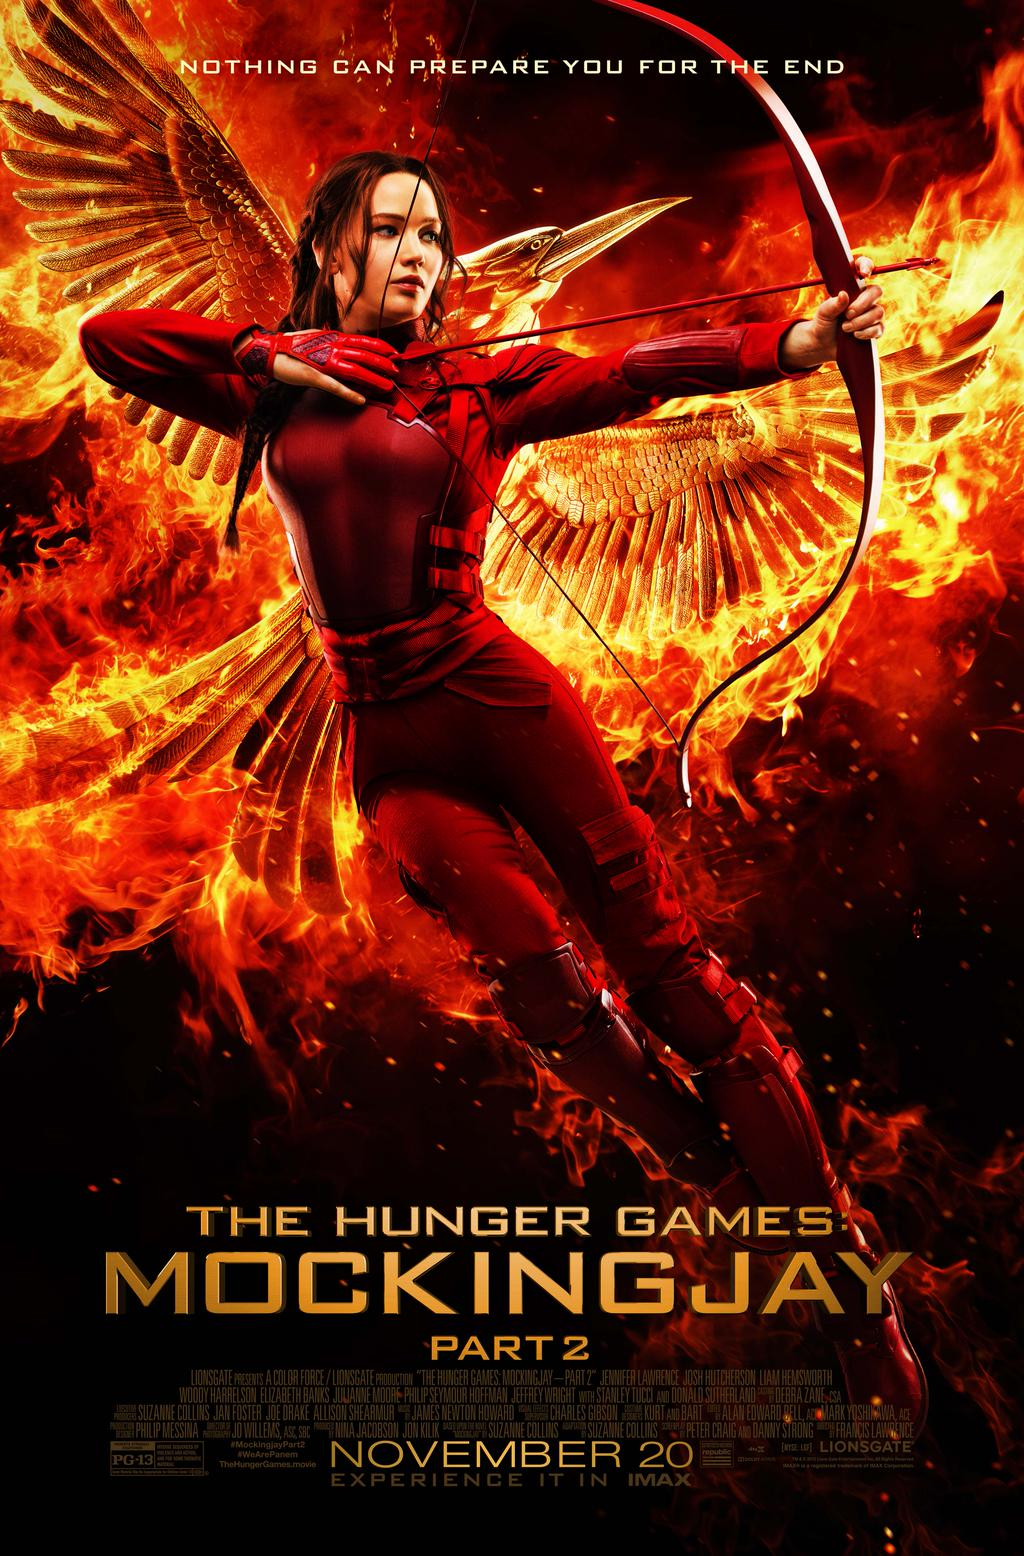 Mockingjay Part 2 Trailer – comicpop library